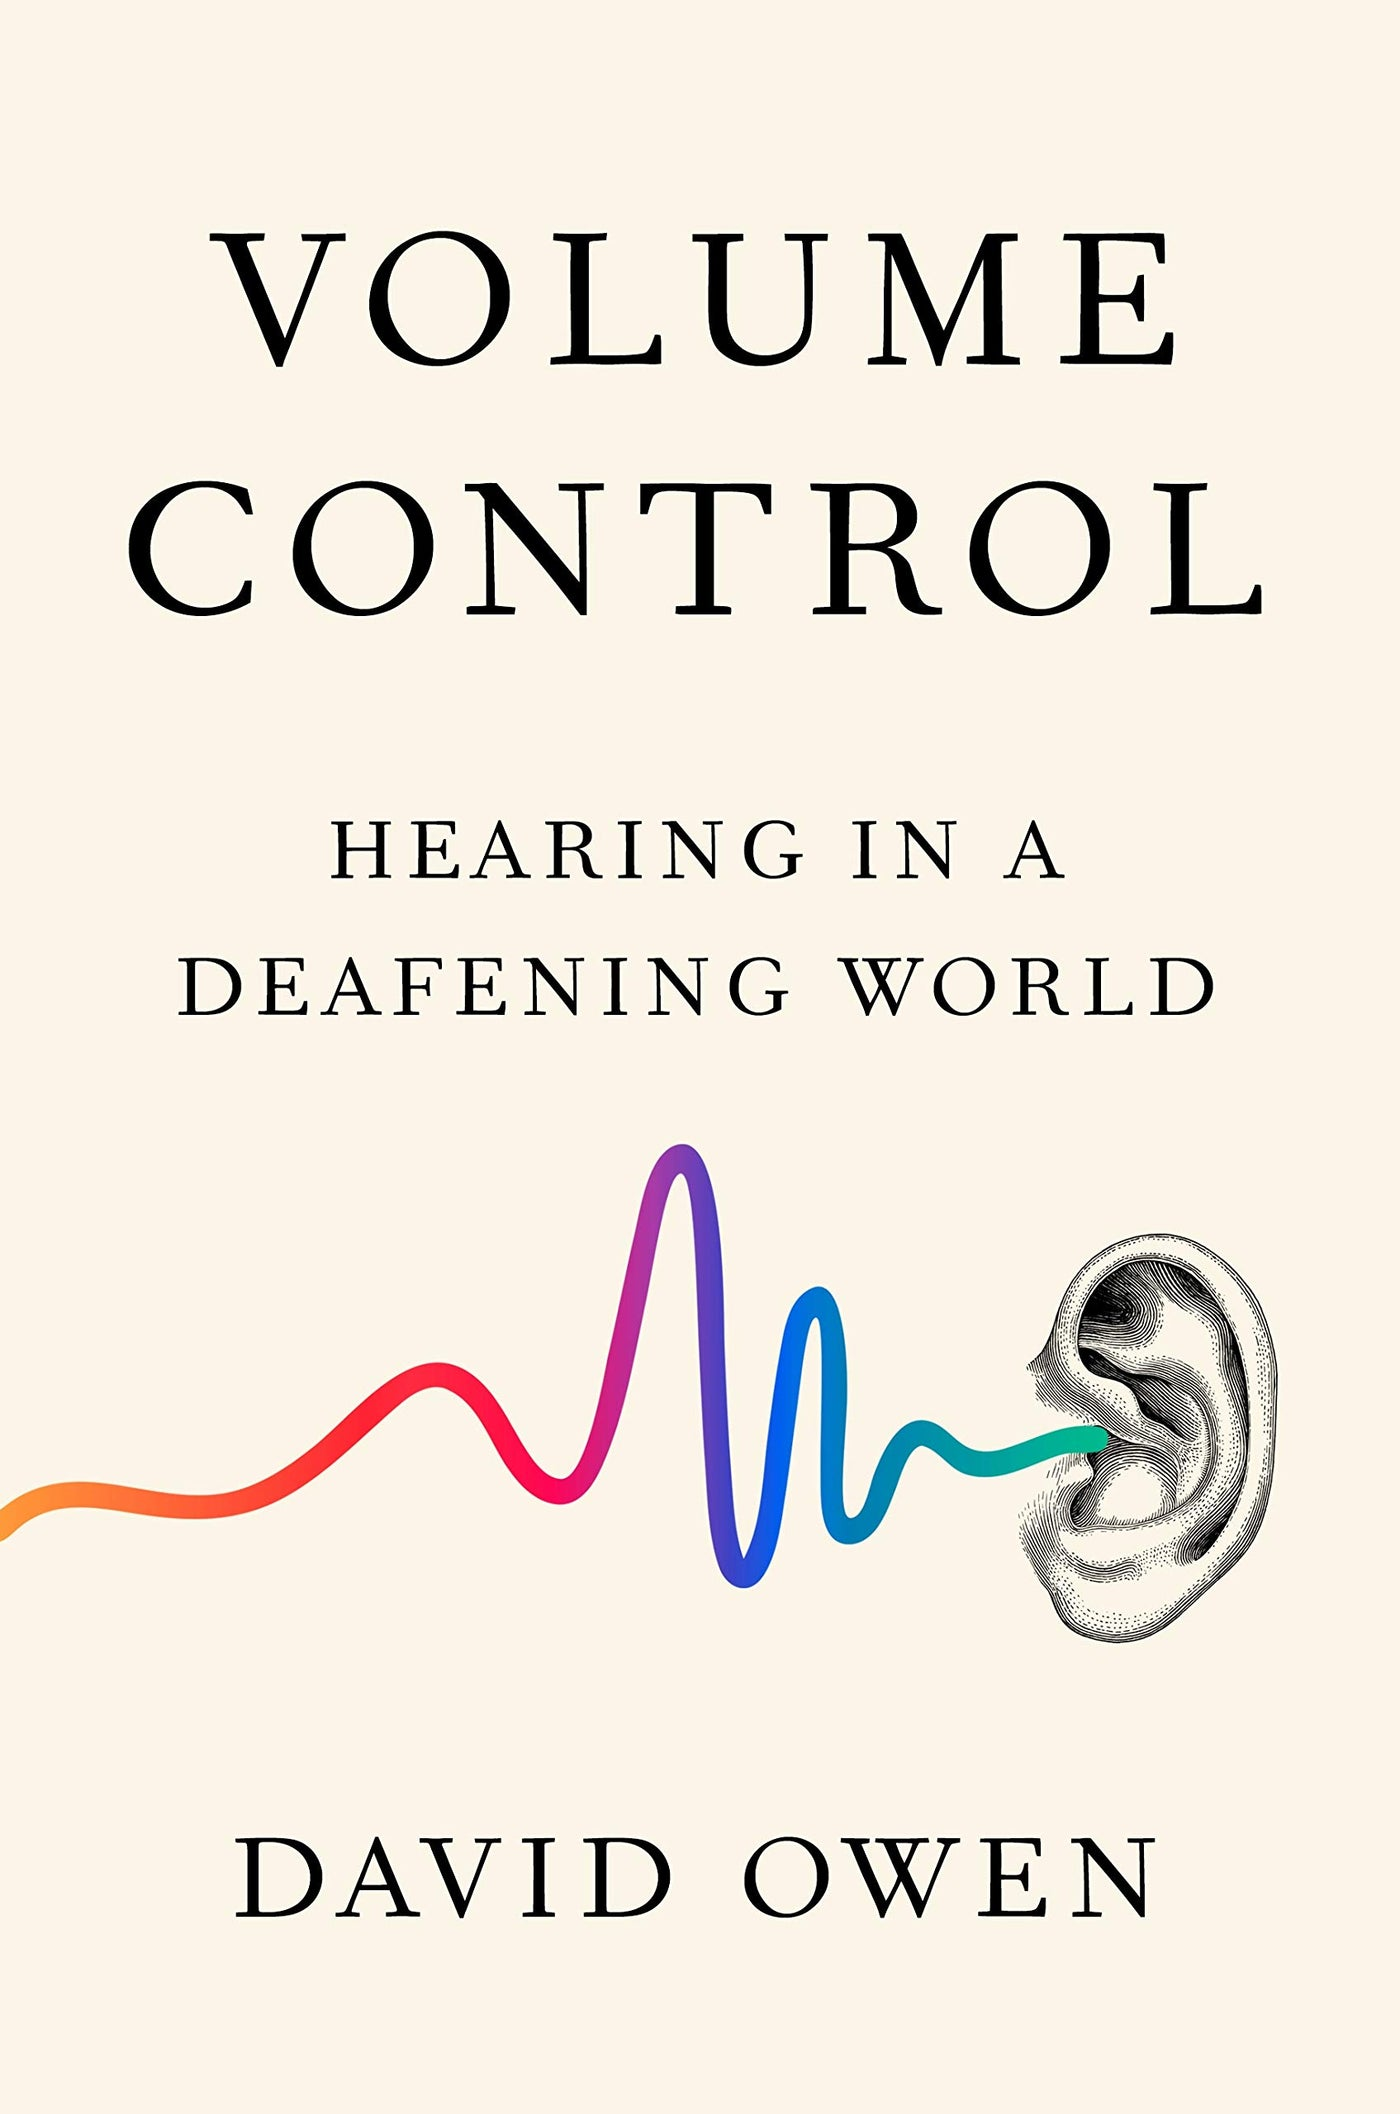 Volume Control: Hearing in a Deafening World by David Owen